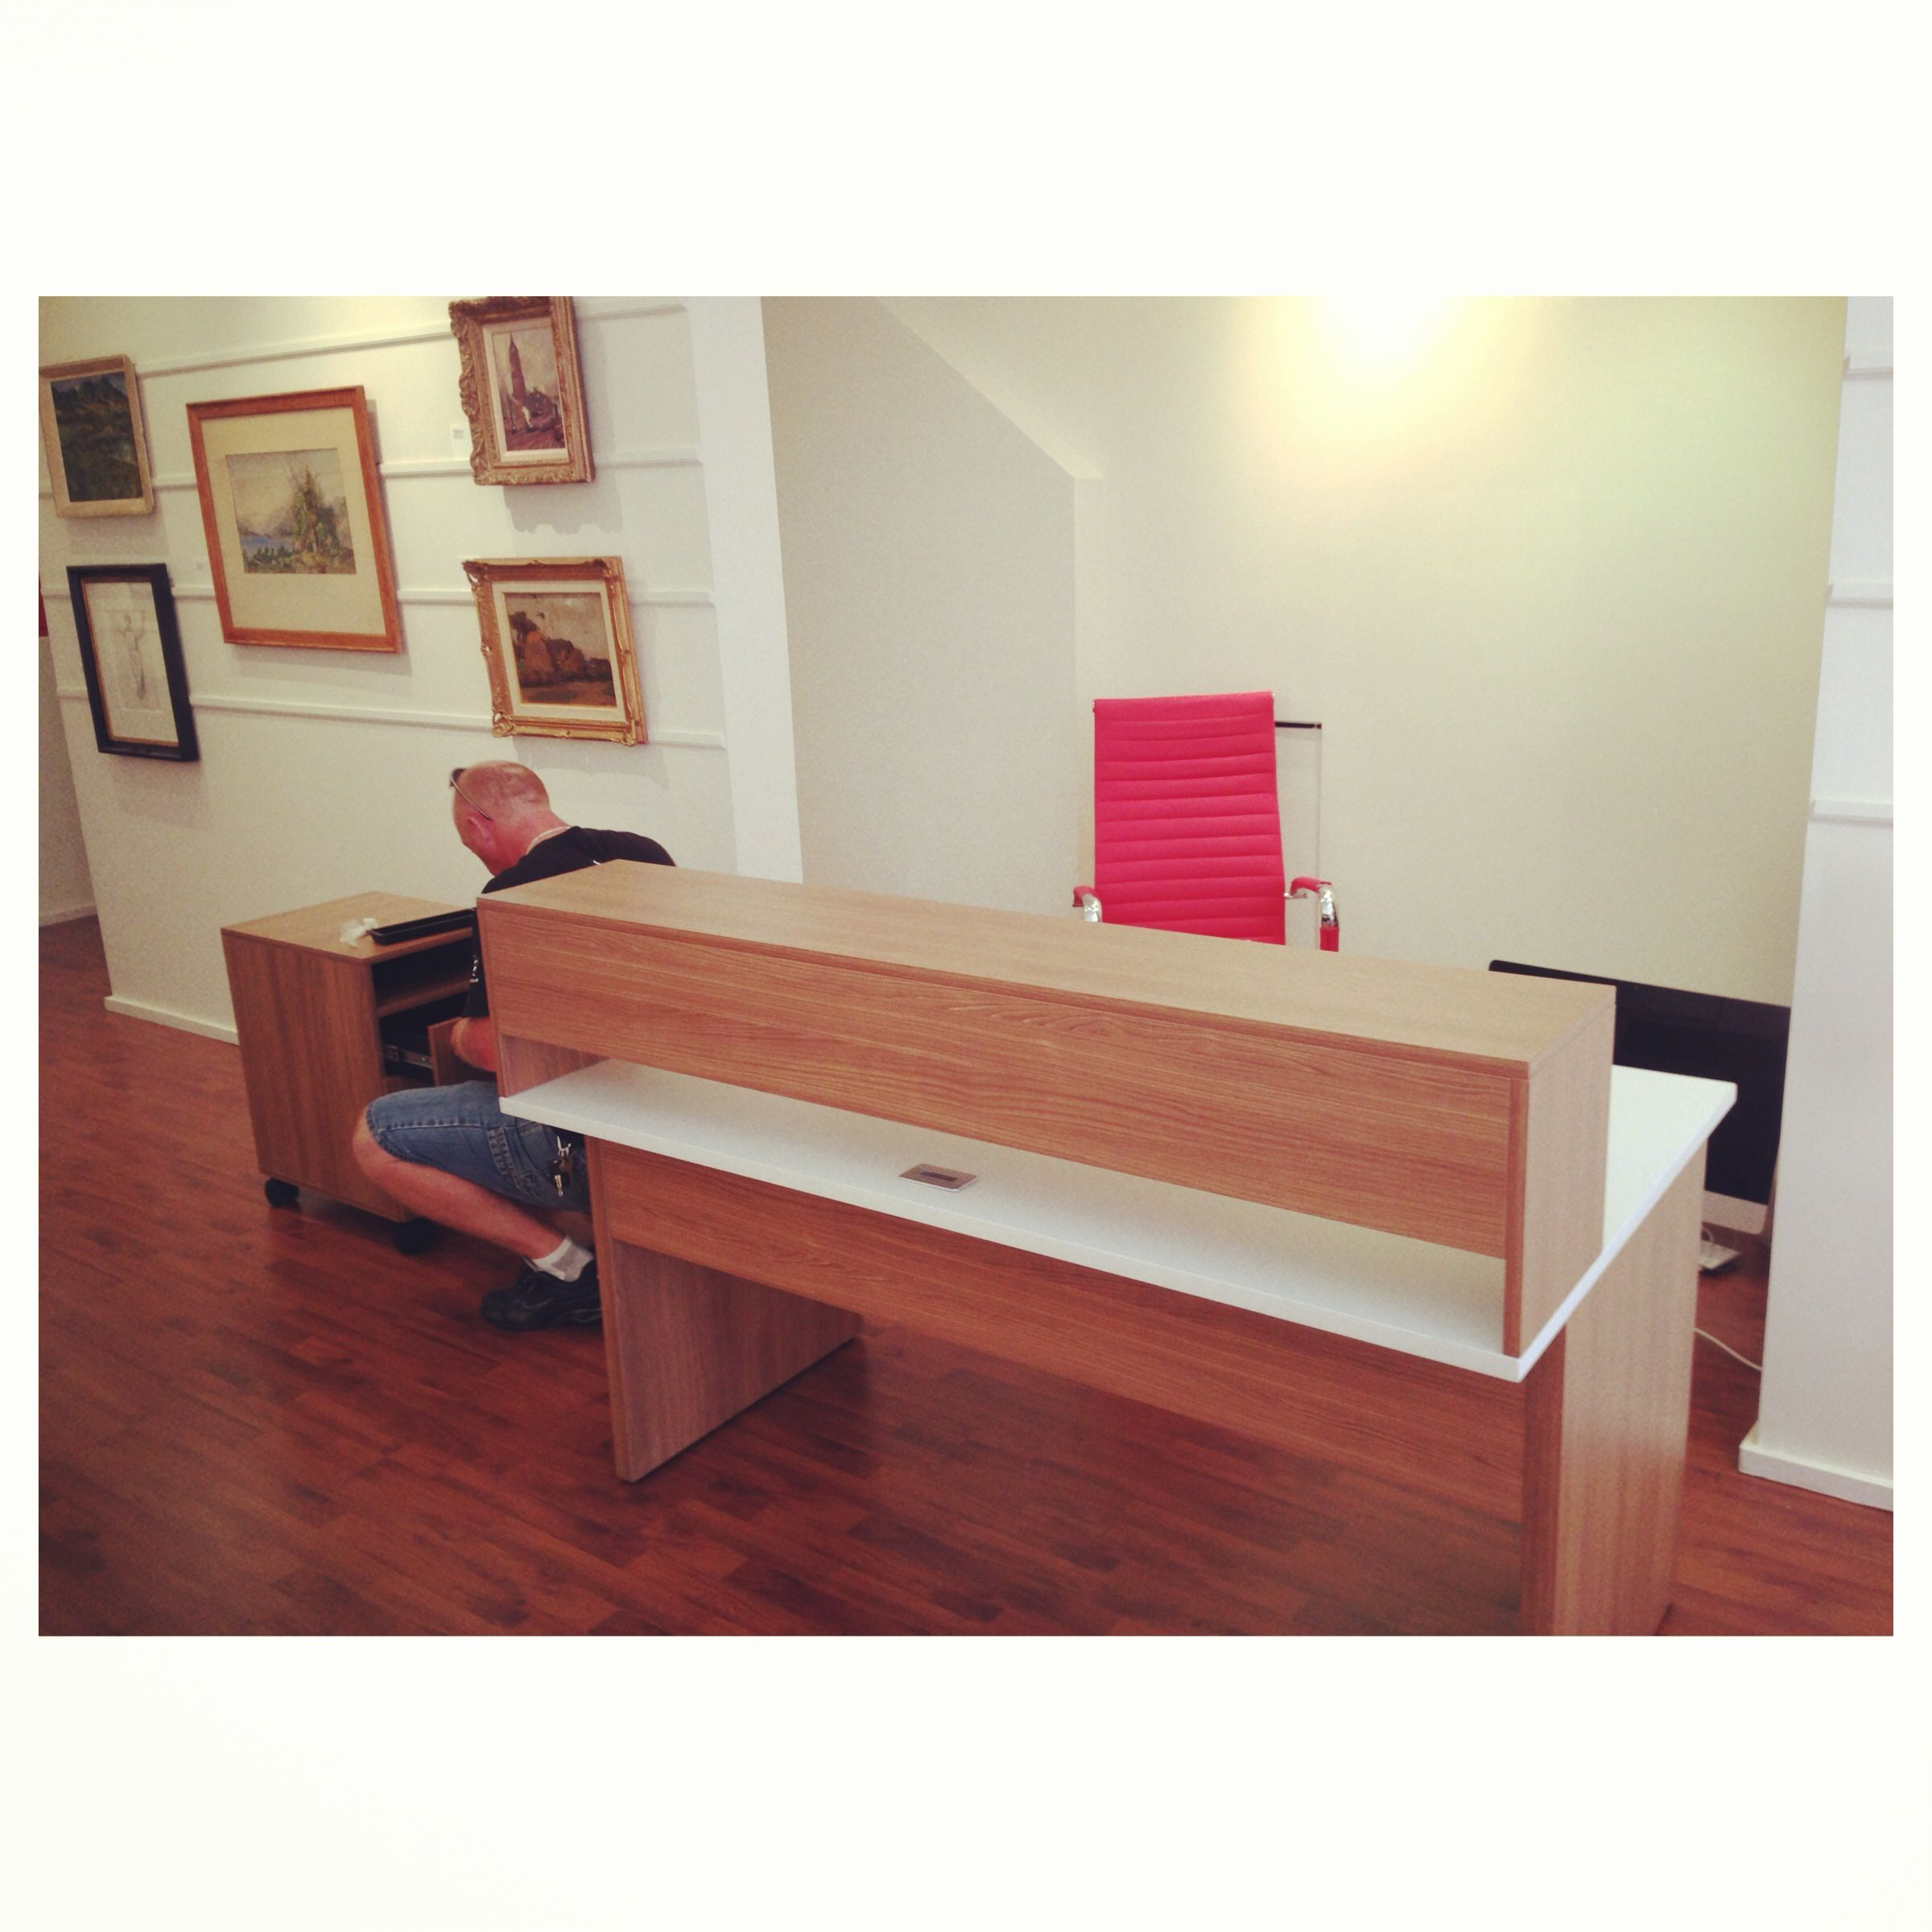 Check out our new desk for our reception area in the gallery!